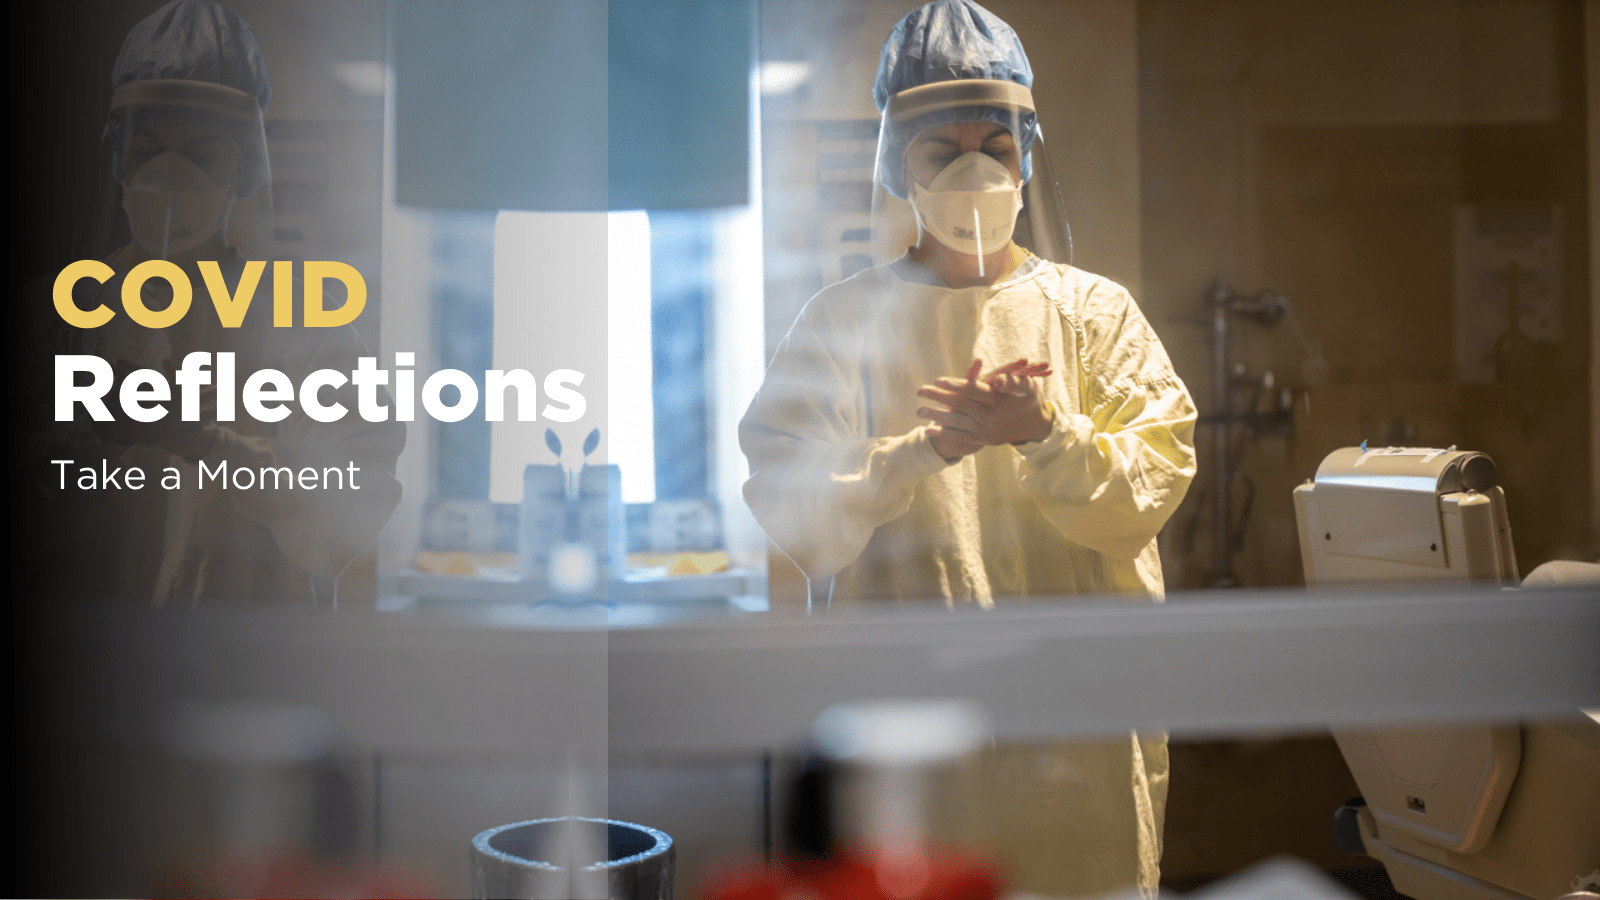 A health care worker in full PPE cleans their hands. Text: COVID reflections - Take a Moment